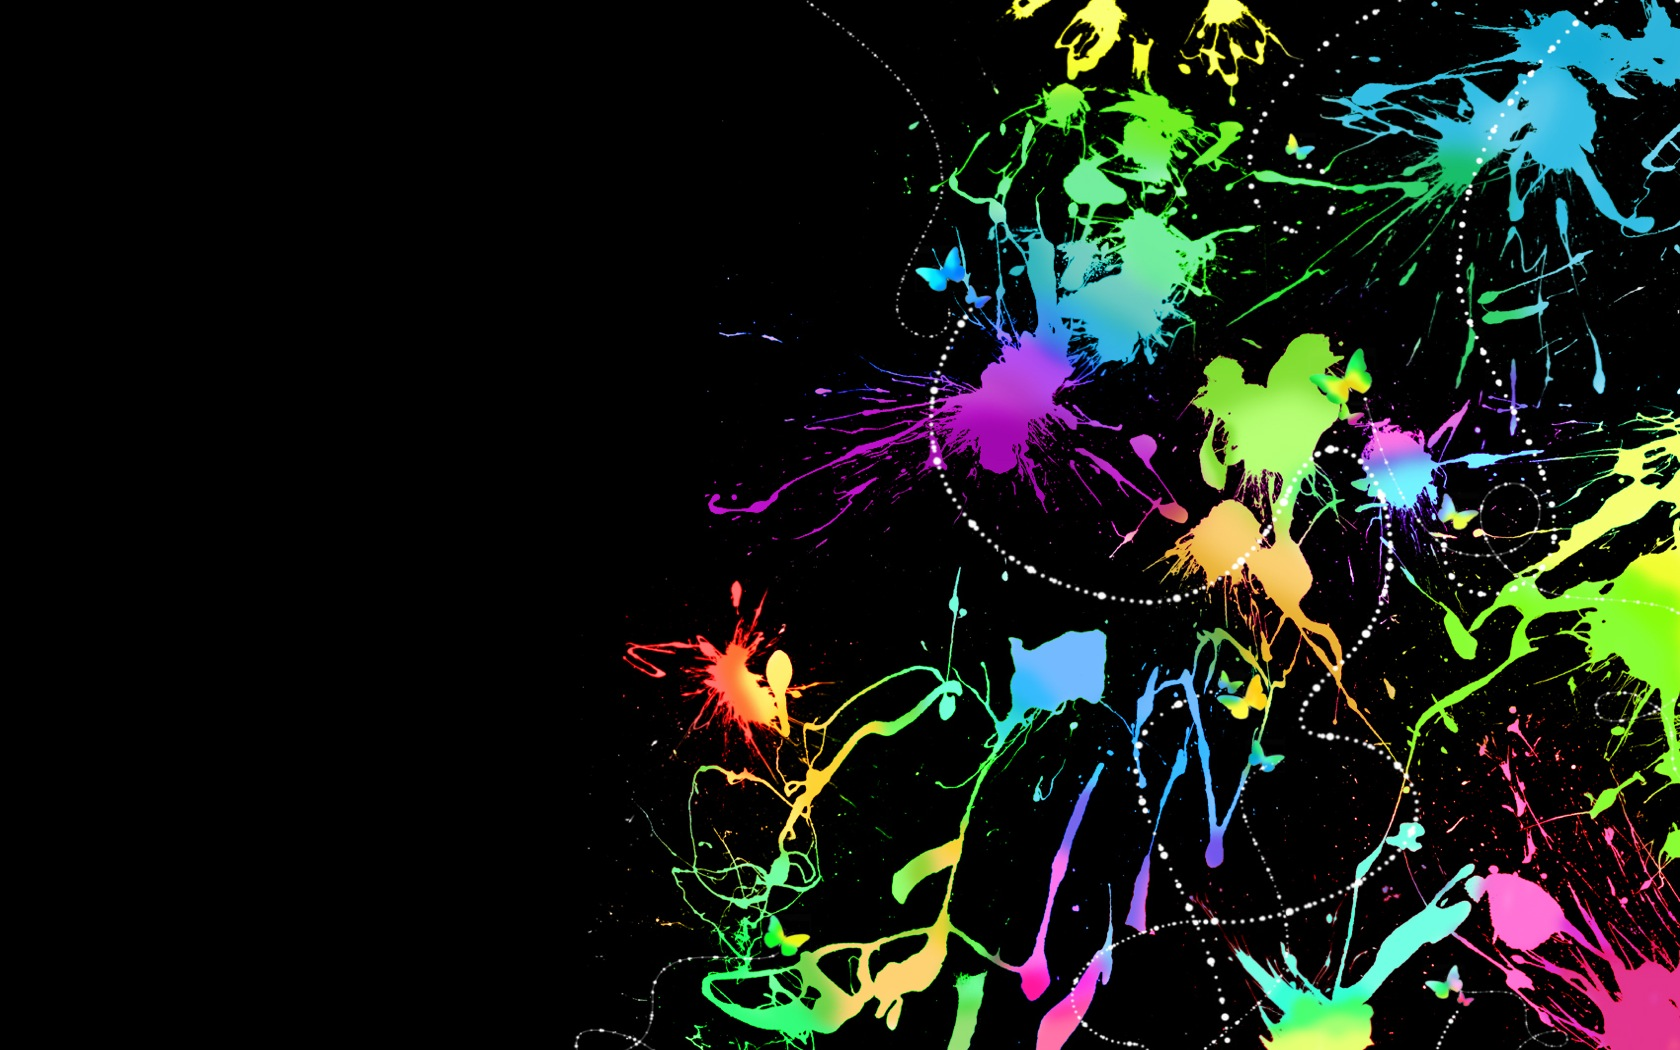 Abstract Colorful Desktop Wallpaper